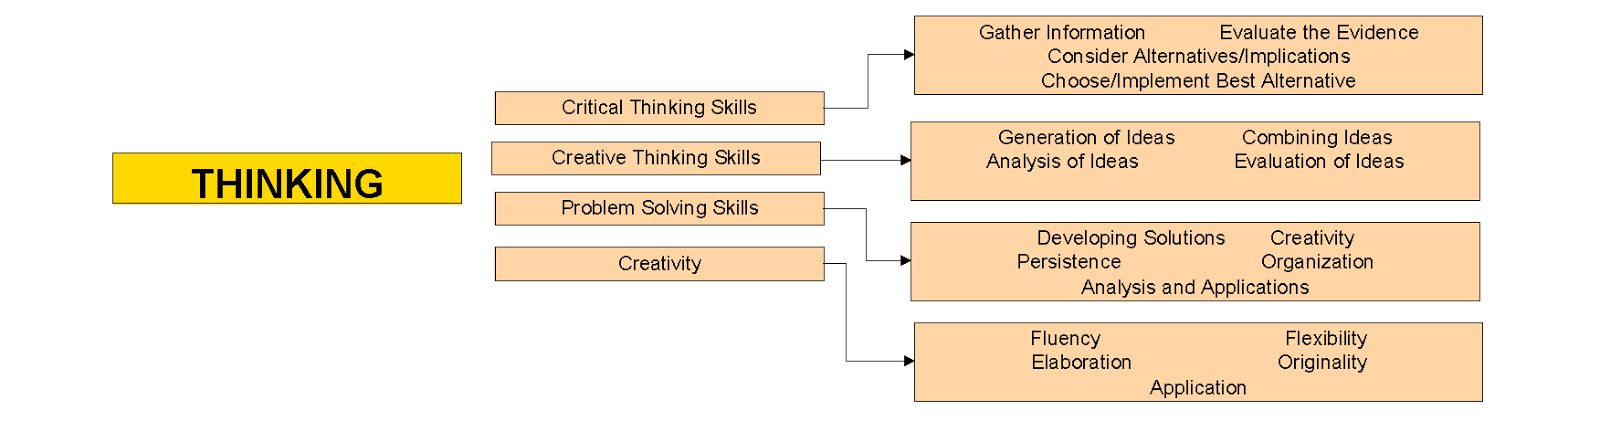 teachingisagift gifted education  differentiation through process, wiring diagram